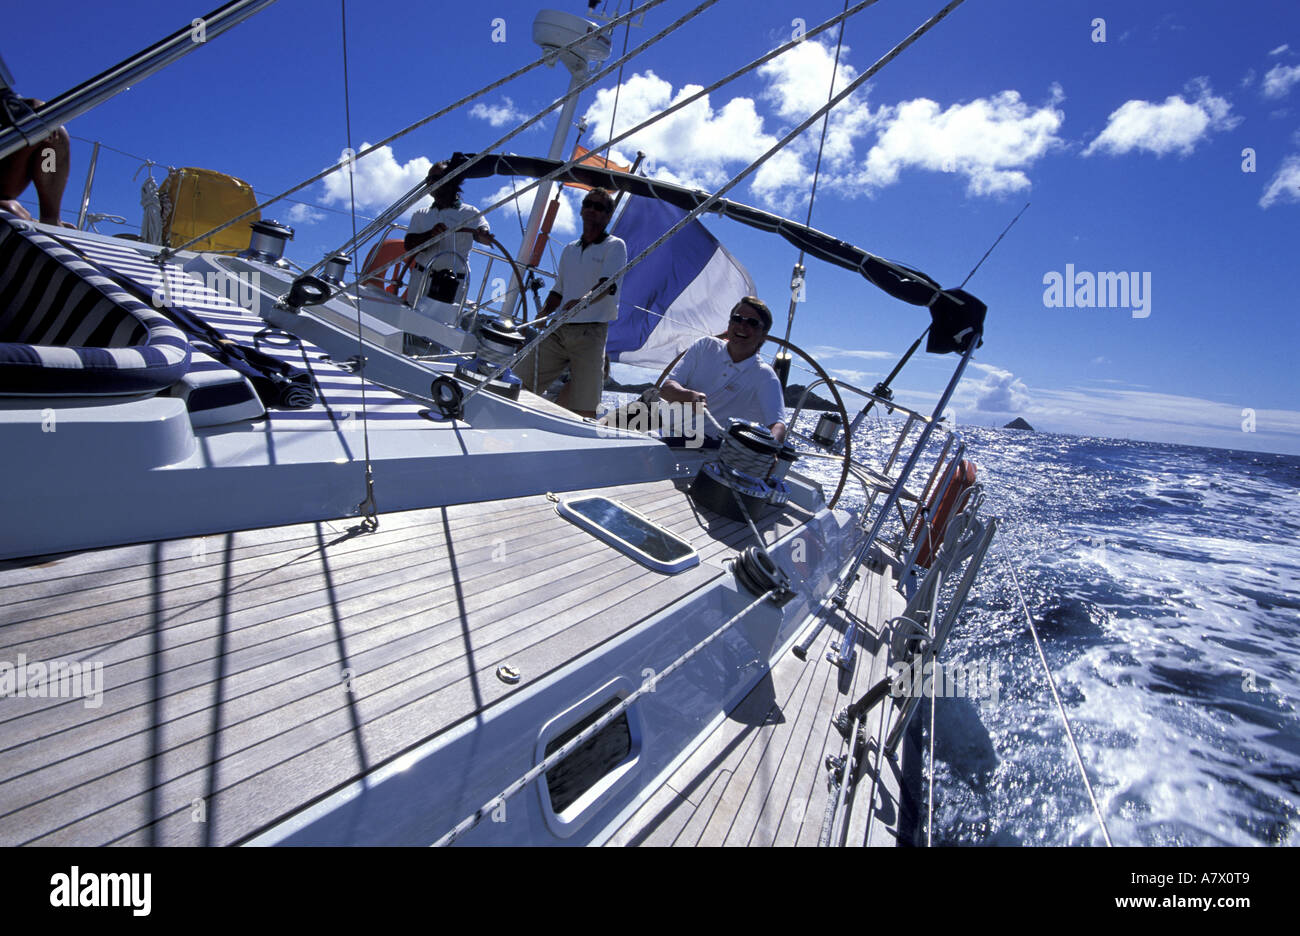 France, Guadeloupe (French West Indies), Saint-Martin, cruising on the Chrysalis, a sailing ship of 77 feet - Stock Image